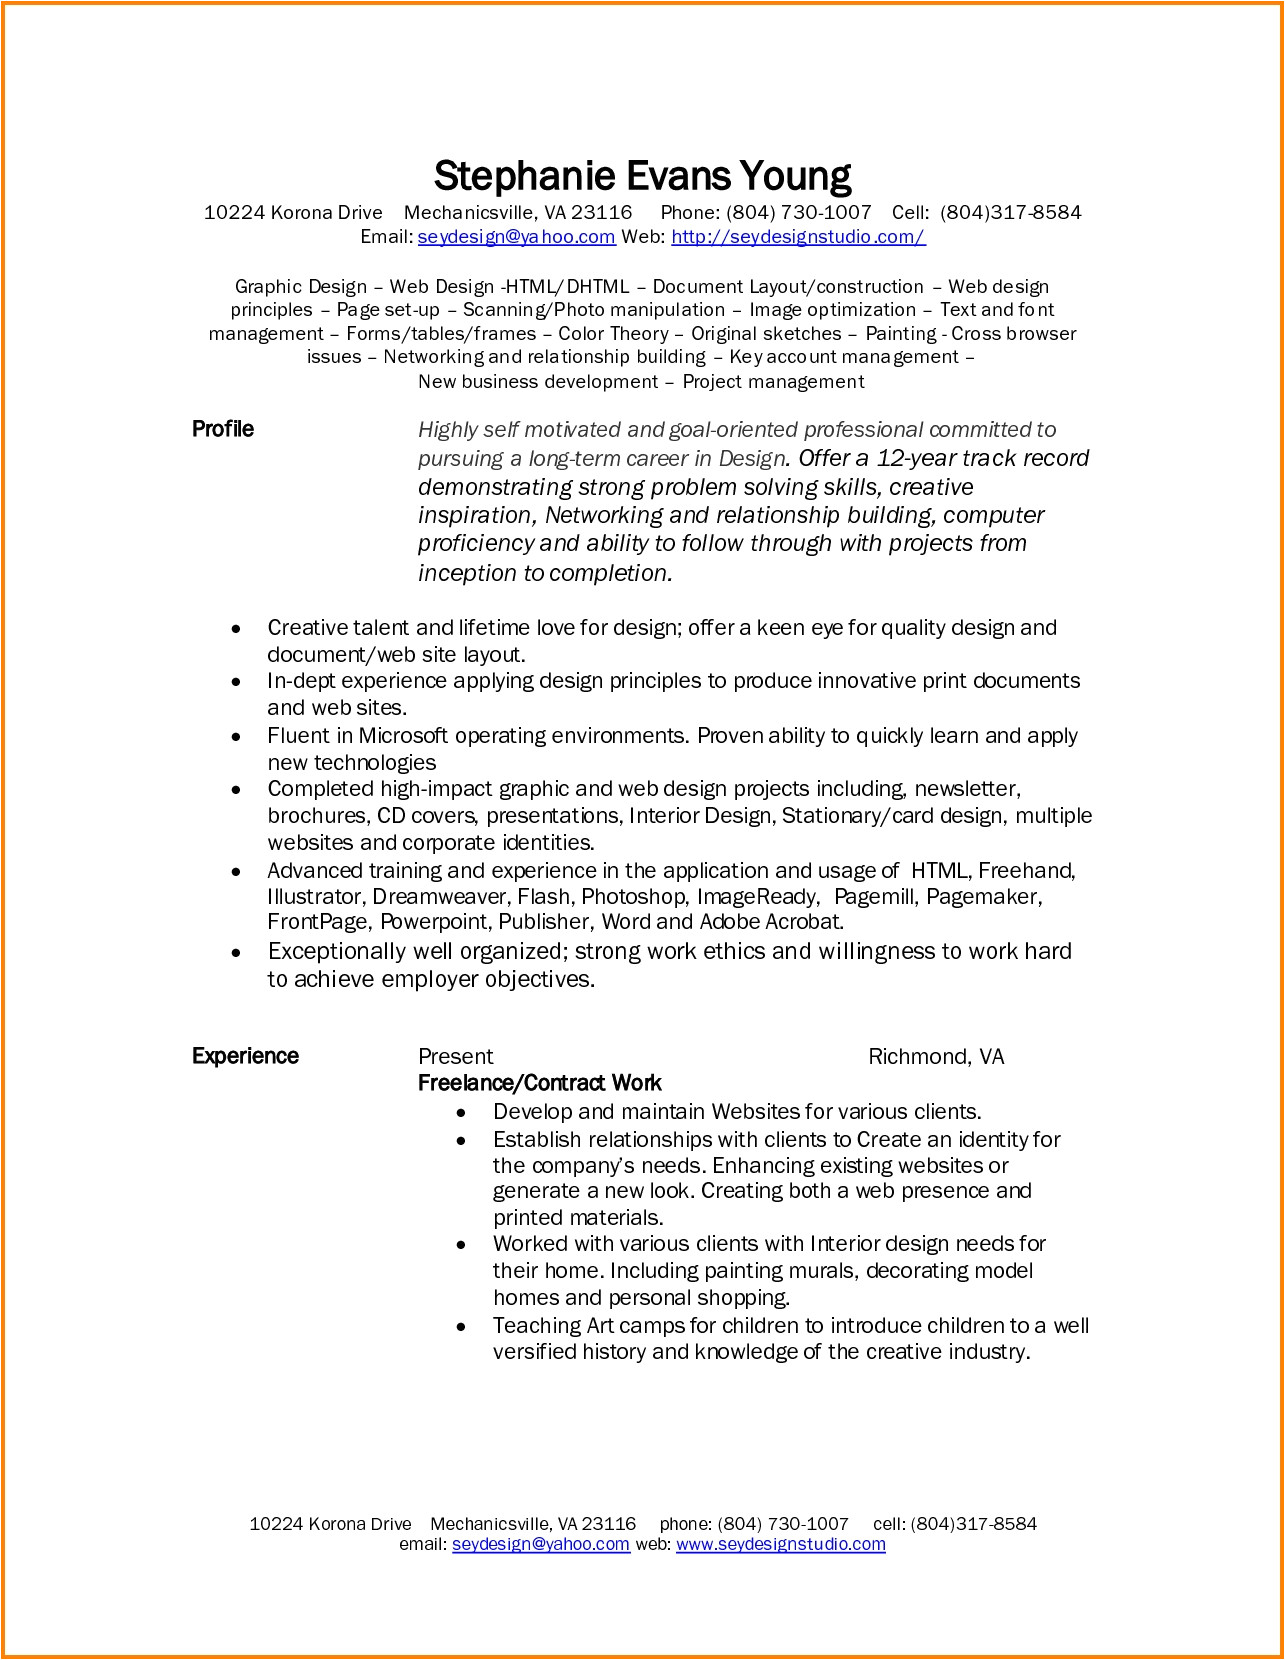 graphic design freelance contract template with freelance contract 4